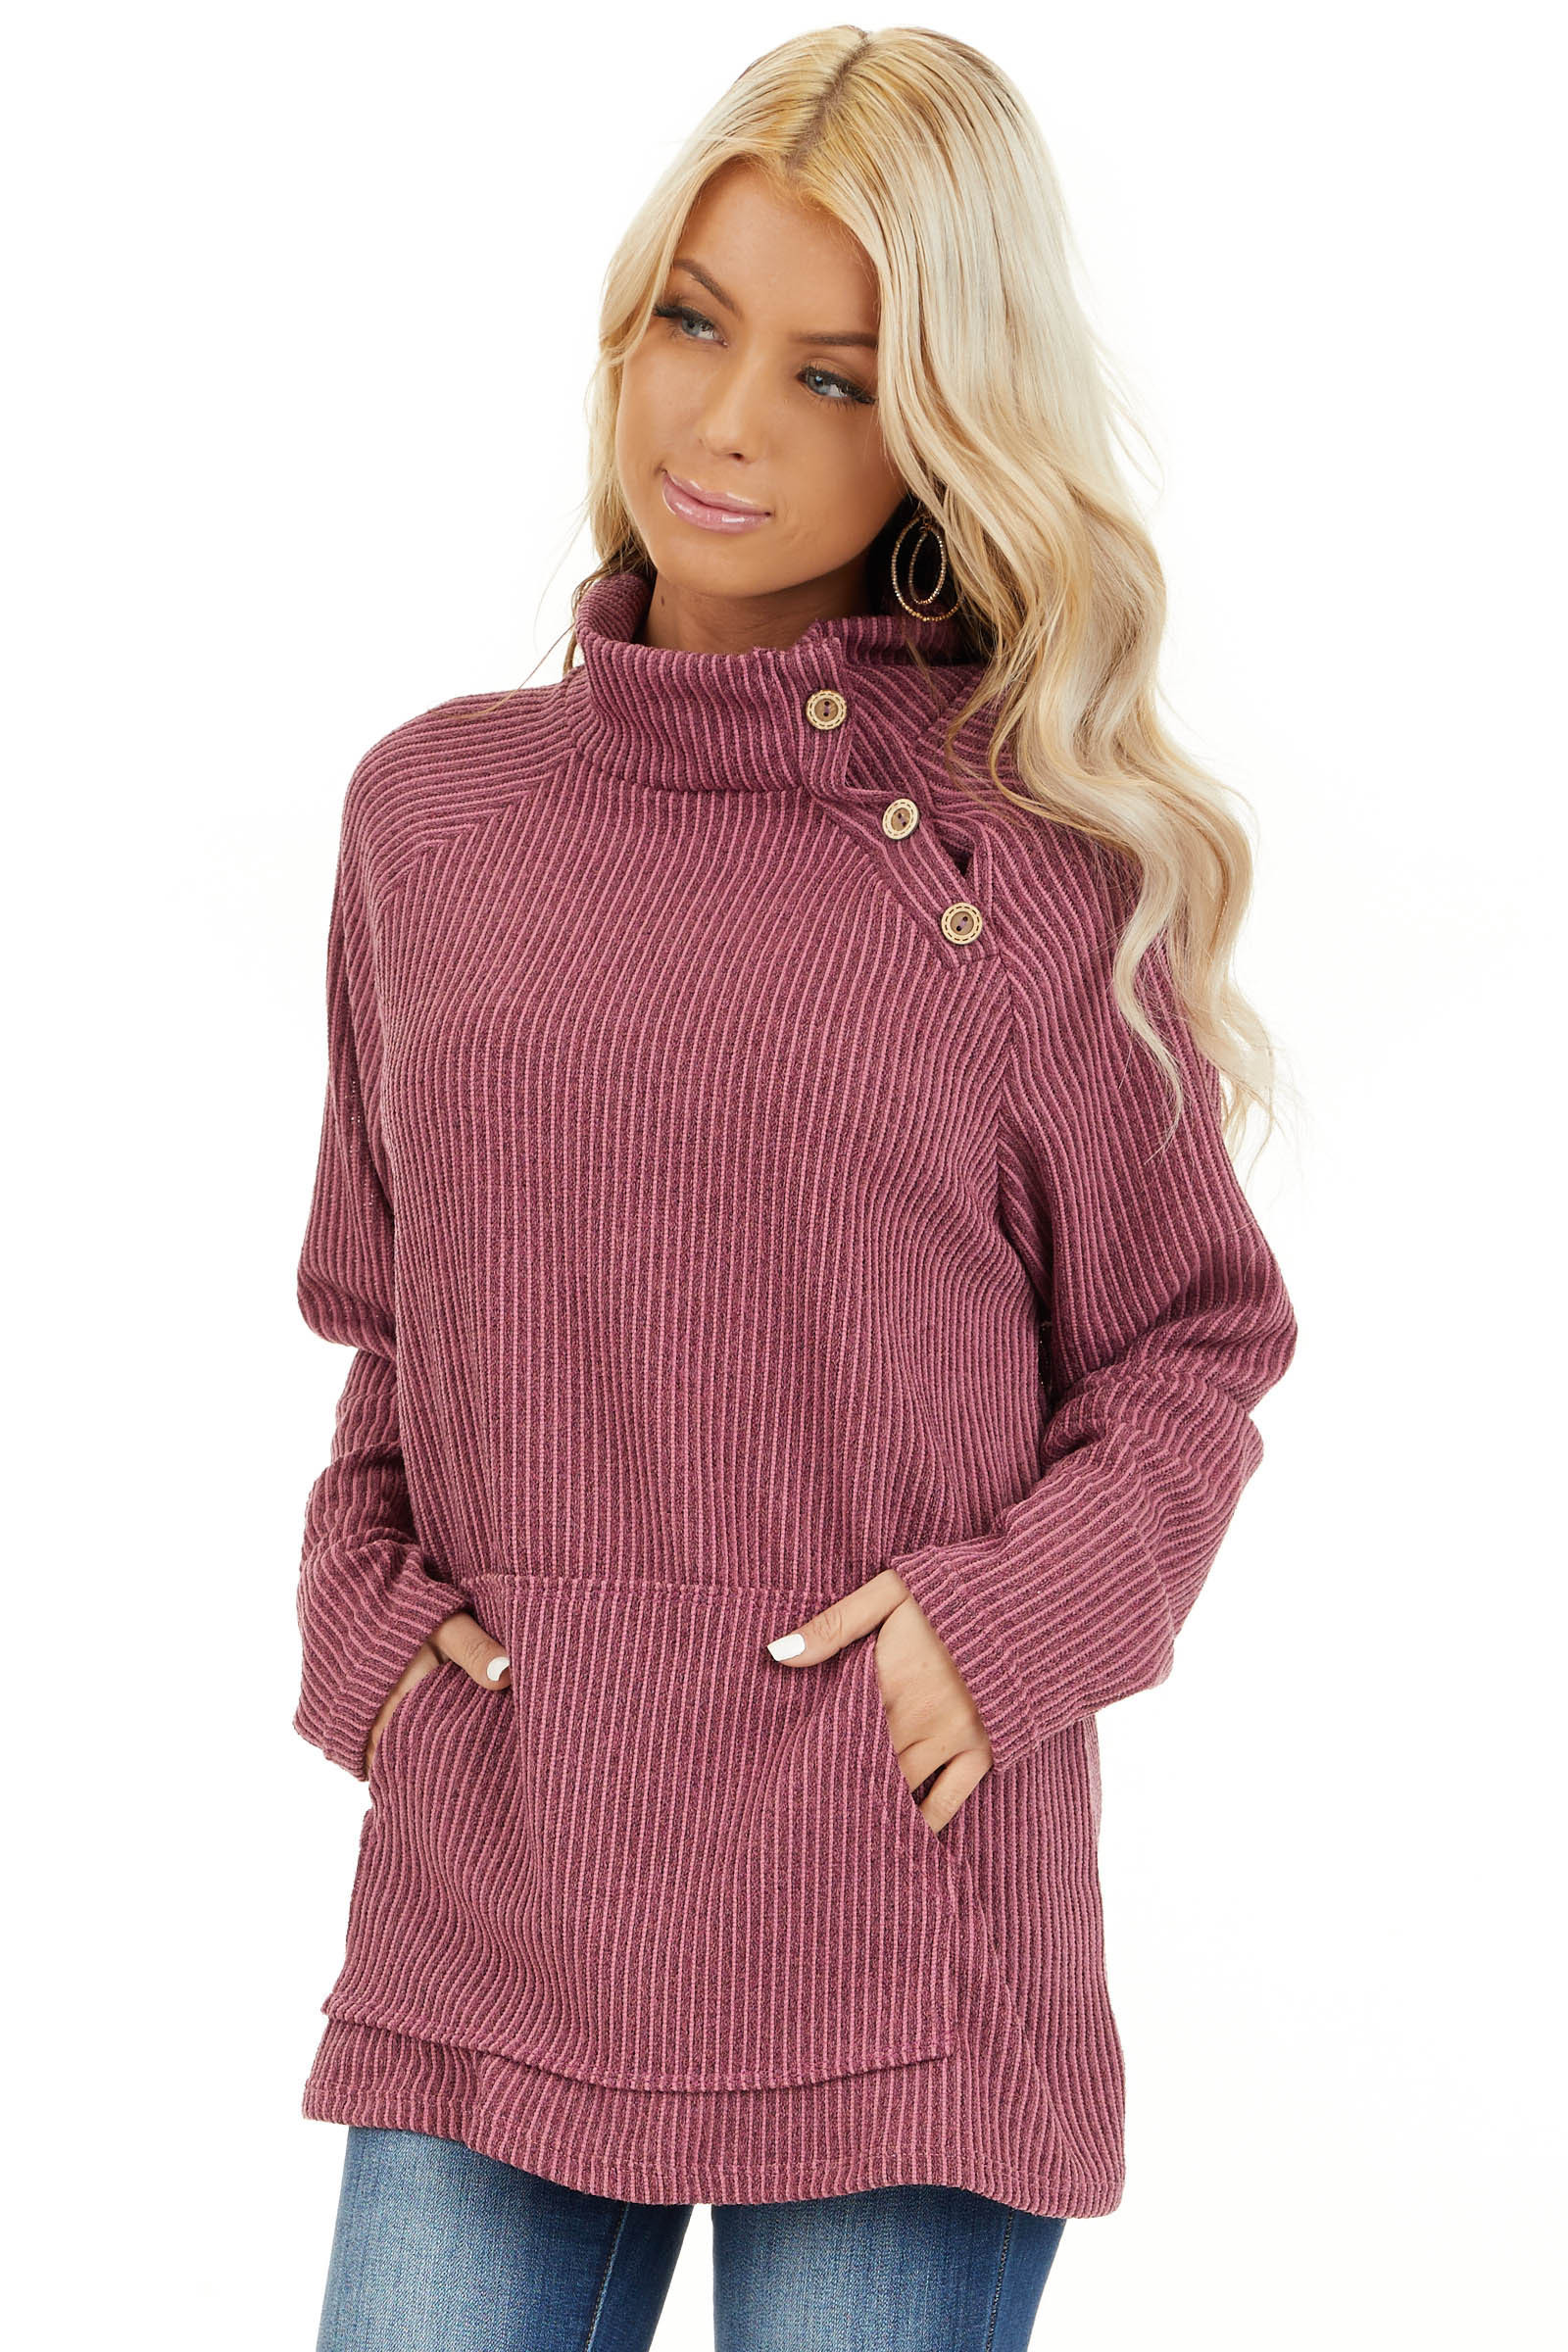 Dusty Mauve Ribbed Knit Mock Neck Top with Button Detail front close up